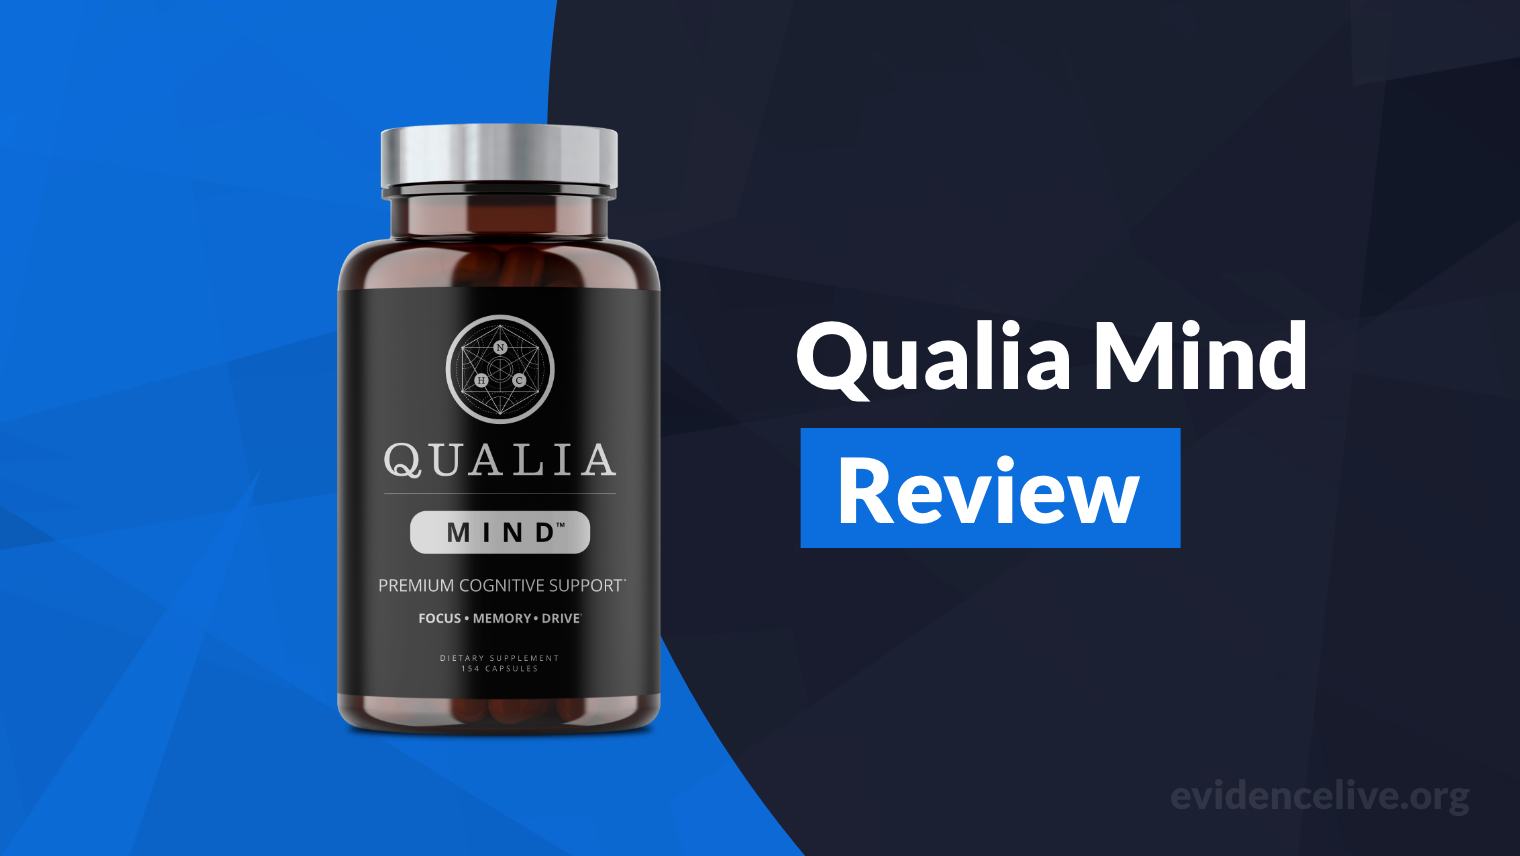 Qualia Mind Review: Is This Nootropic Worth The Money?